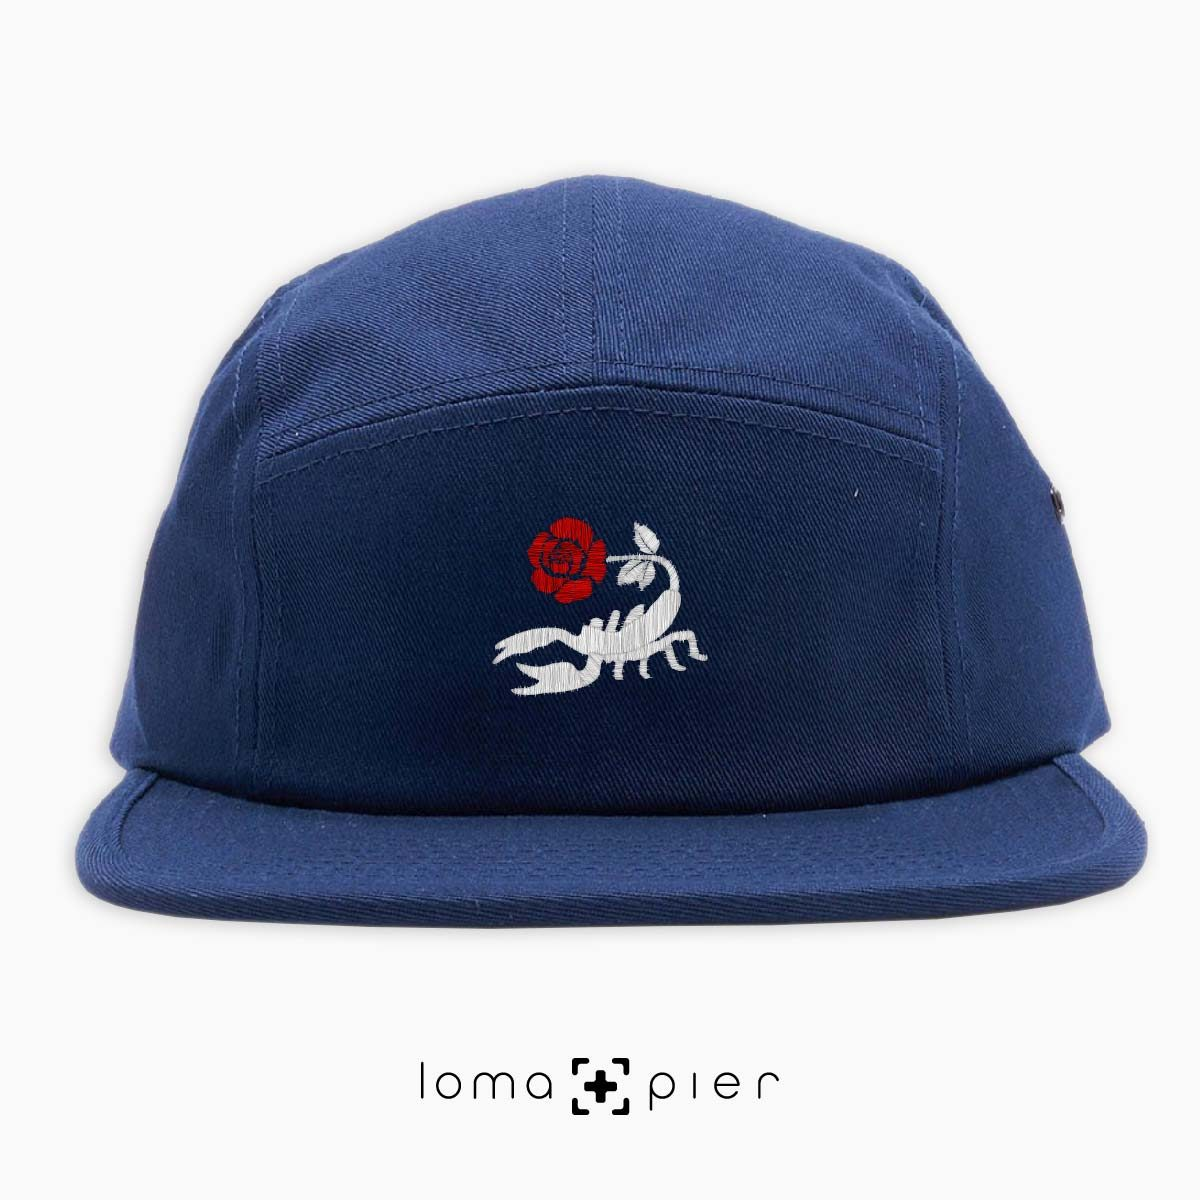 SCORPION ROSE icon embroidered on a navy blue cotton 5-panel hat with multicolor thread in the loma+pier hat store